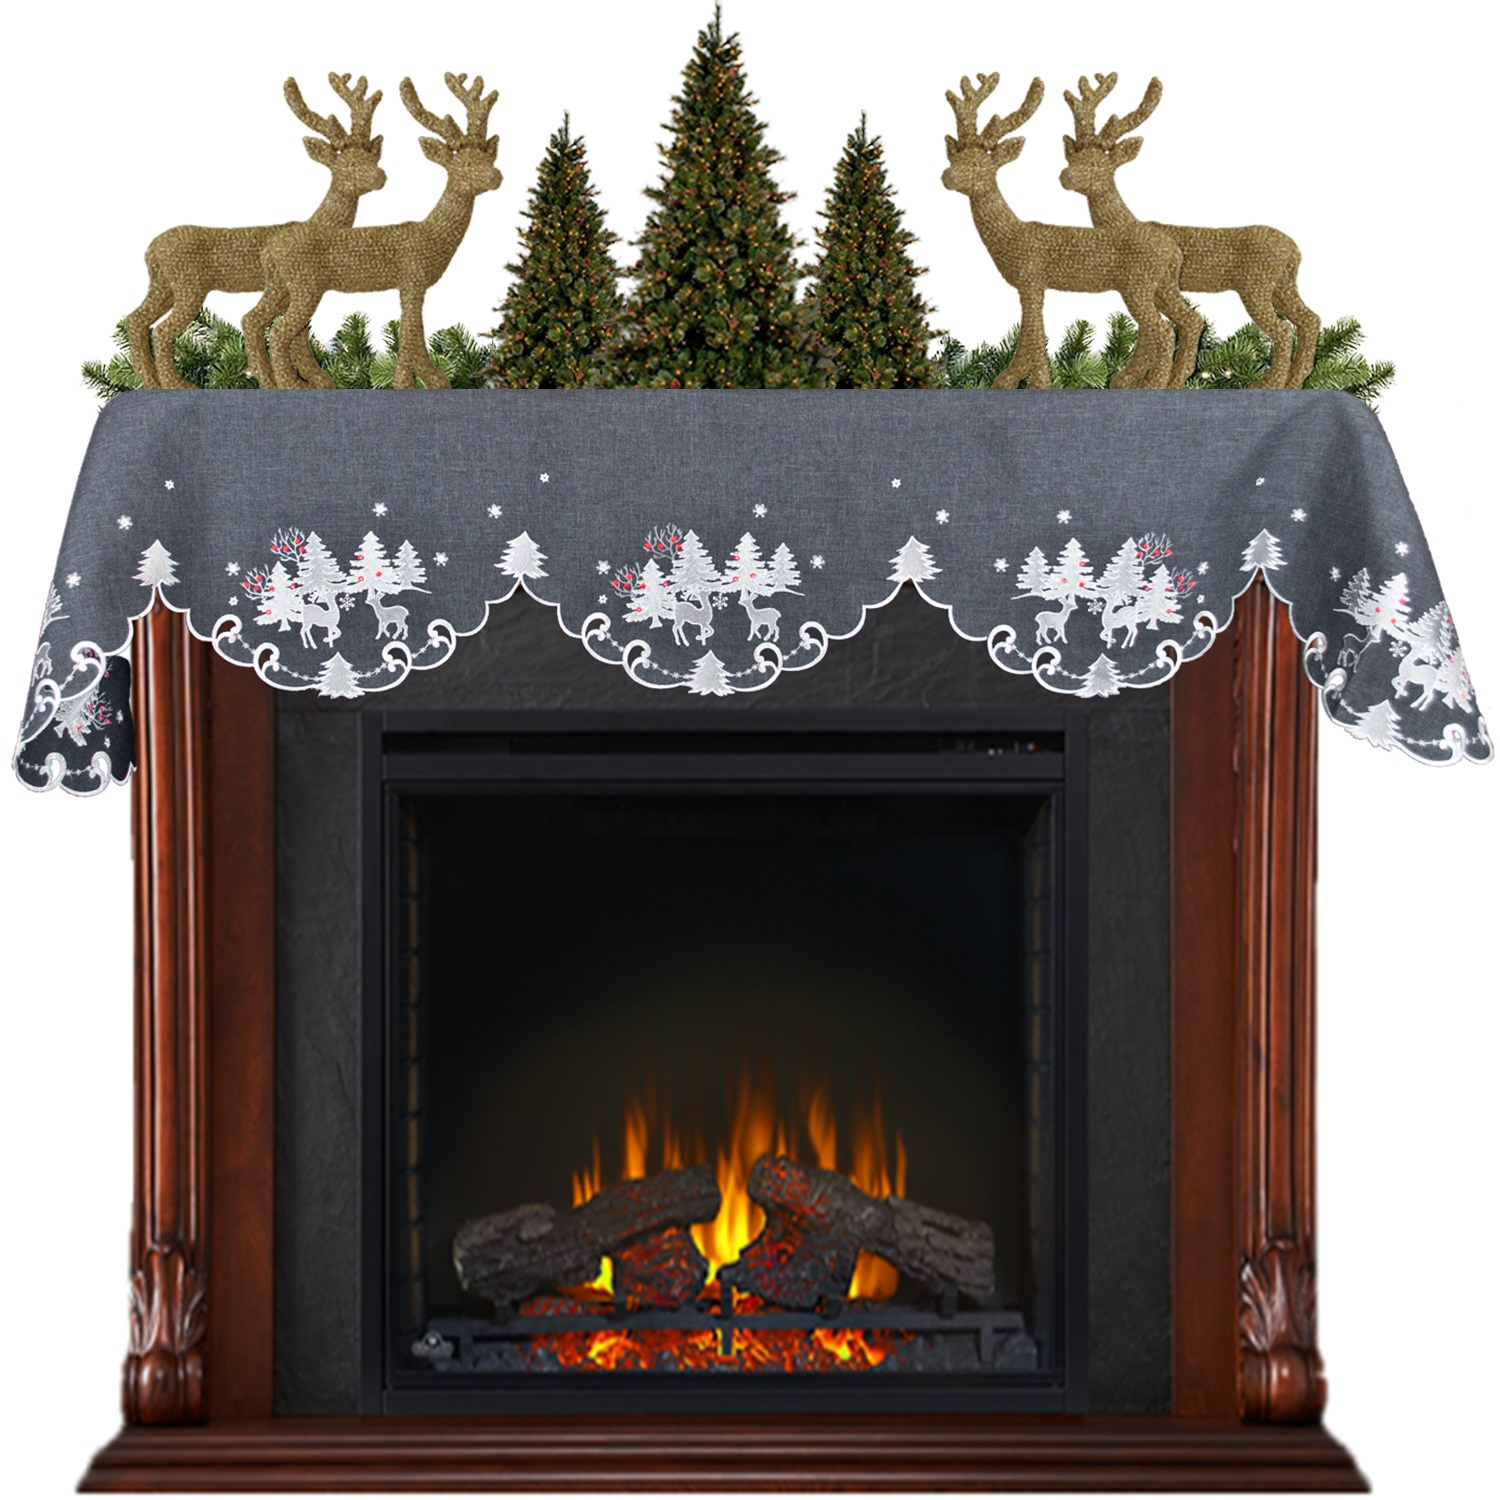 embroidered reindeer fireplace mantel scarf